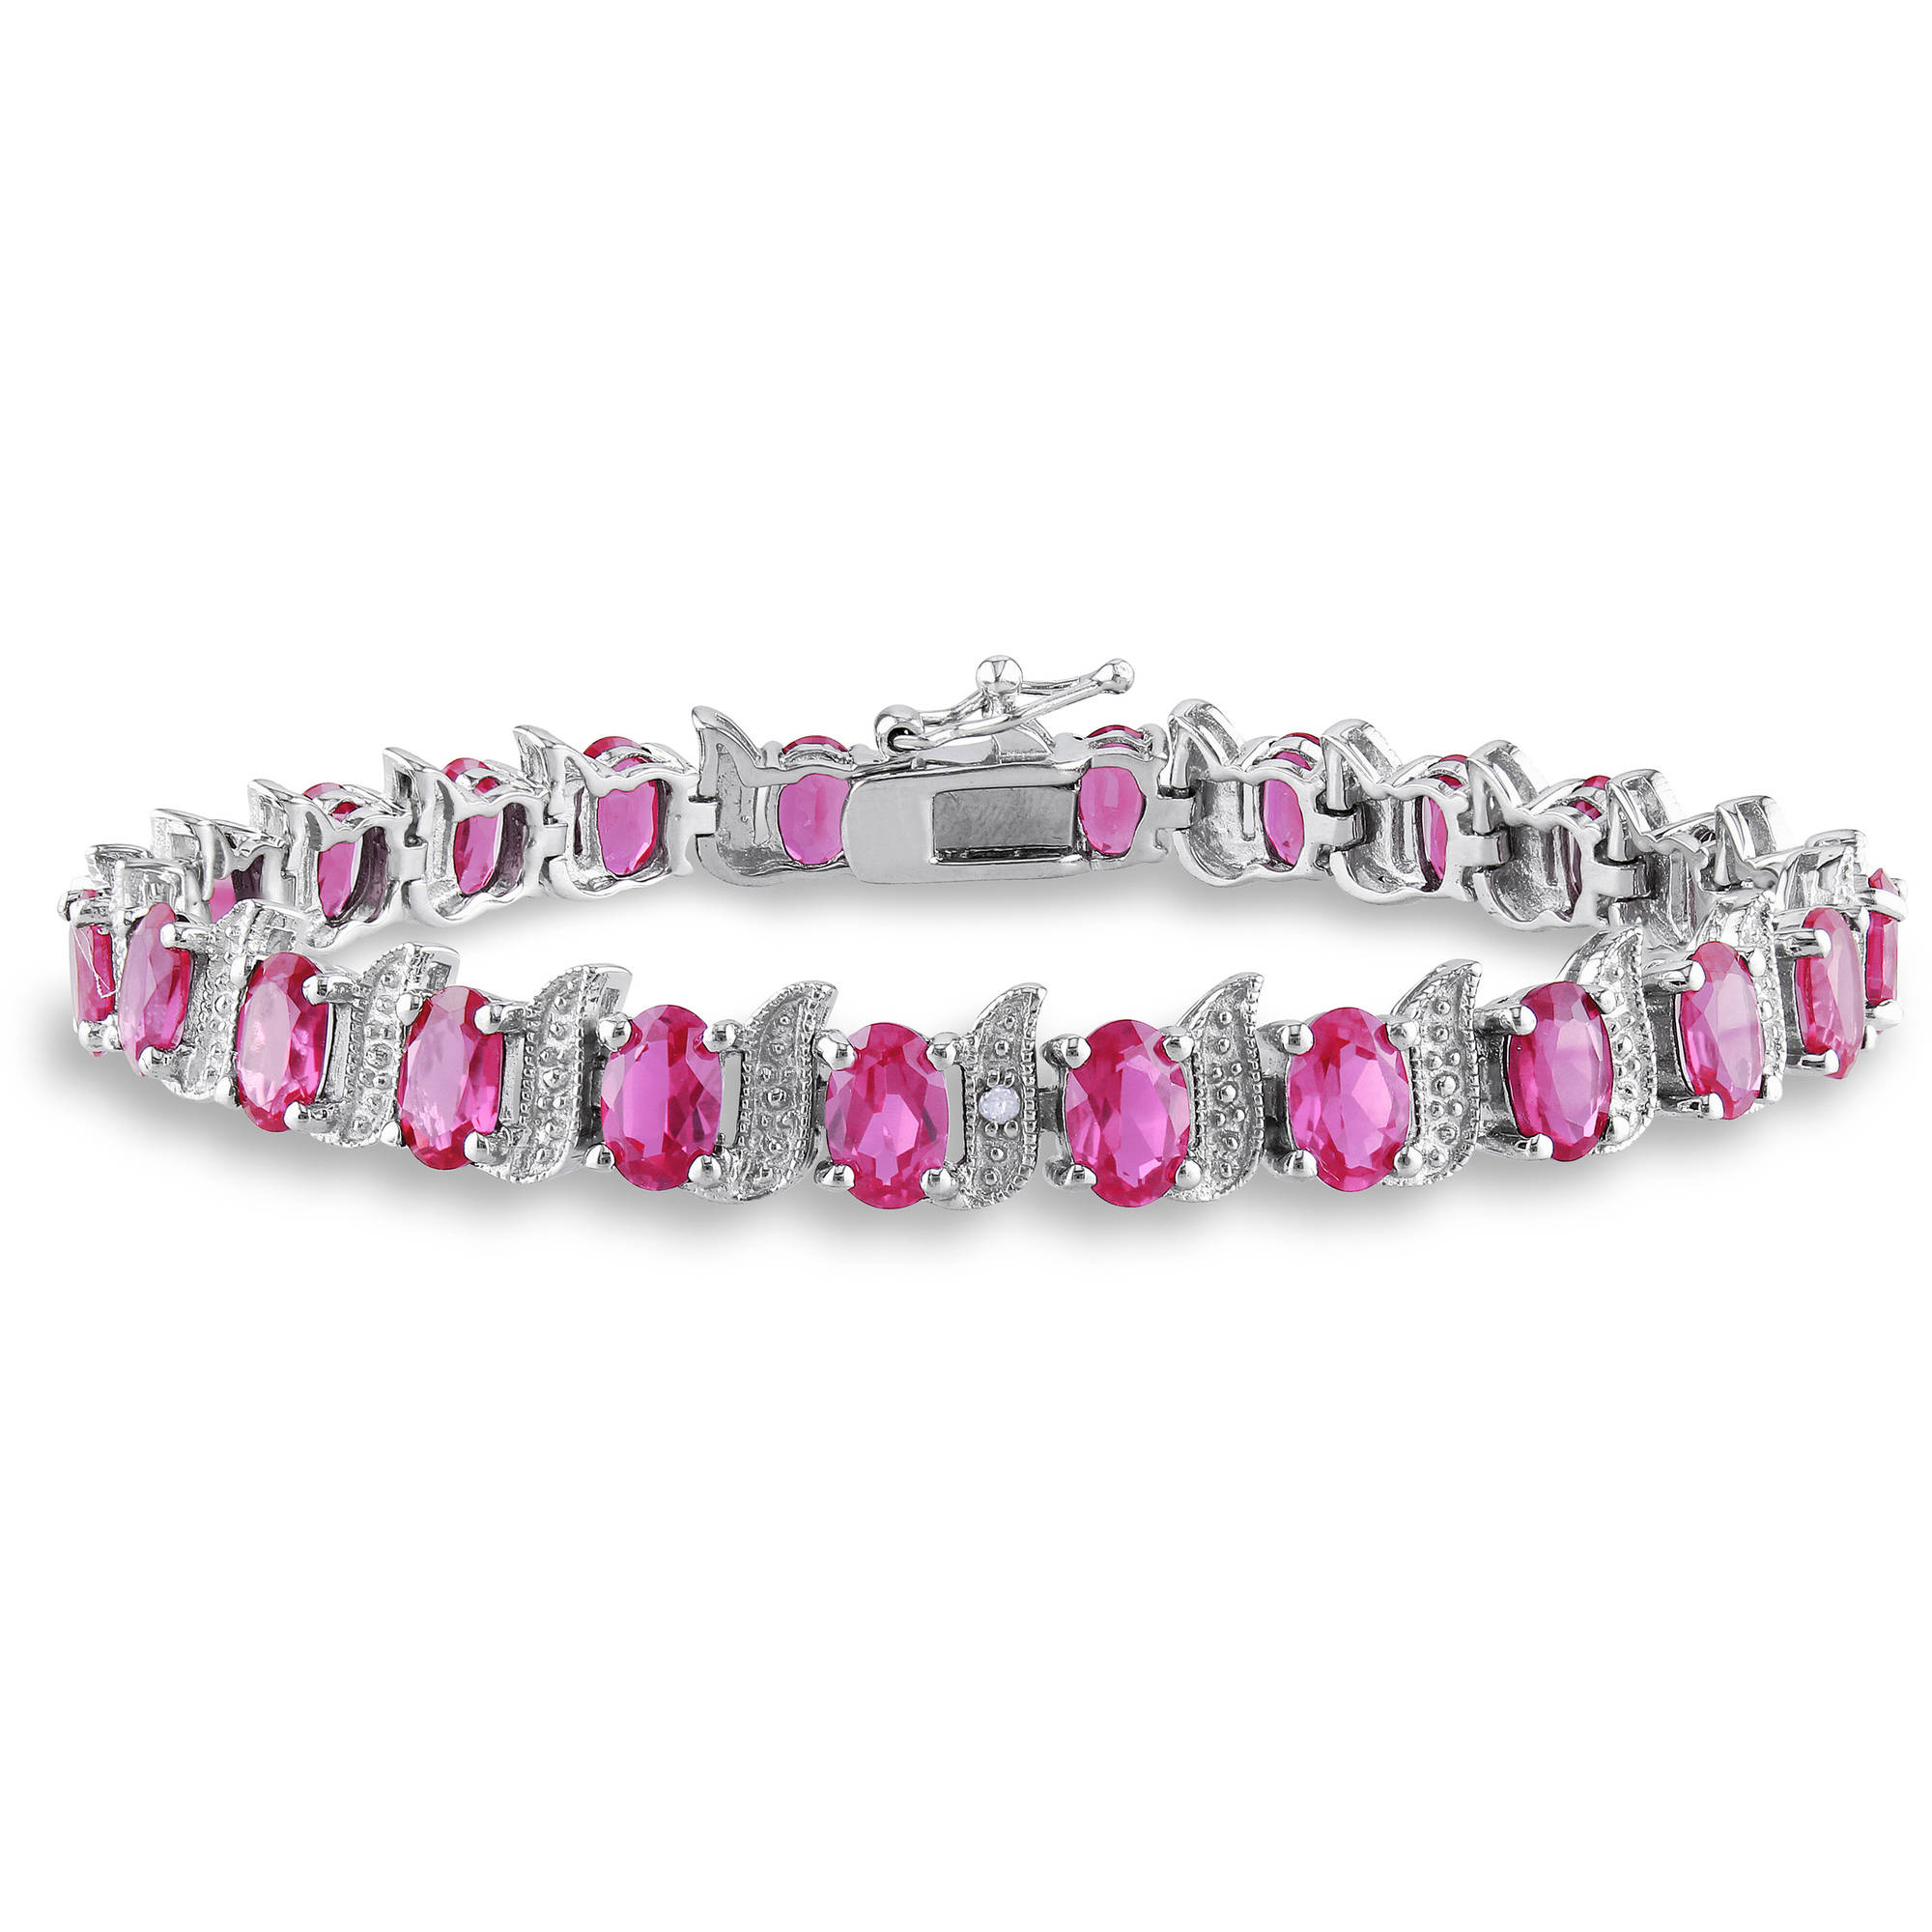 "Created Pink Sapphire Sterling Silver Bracelet with Diamond Accents, 7"" by"